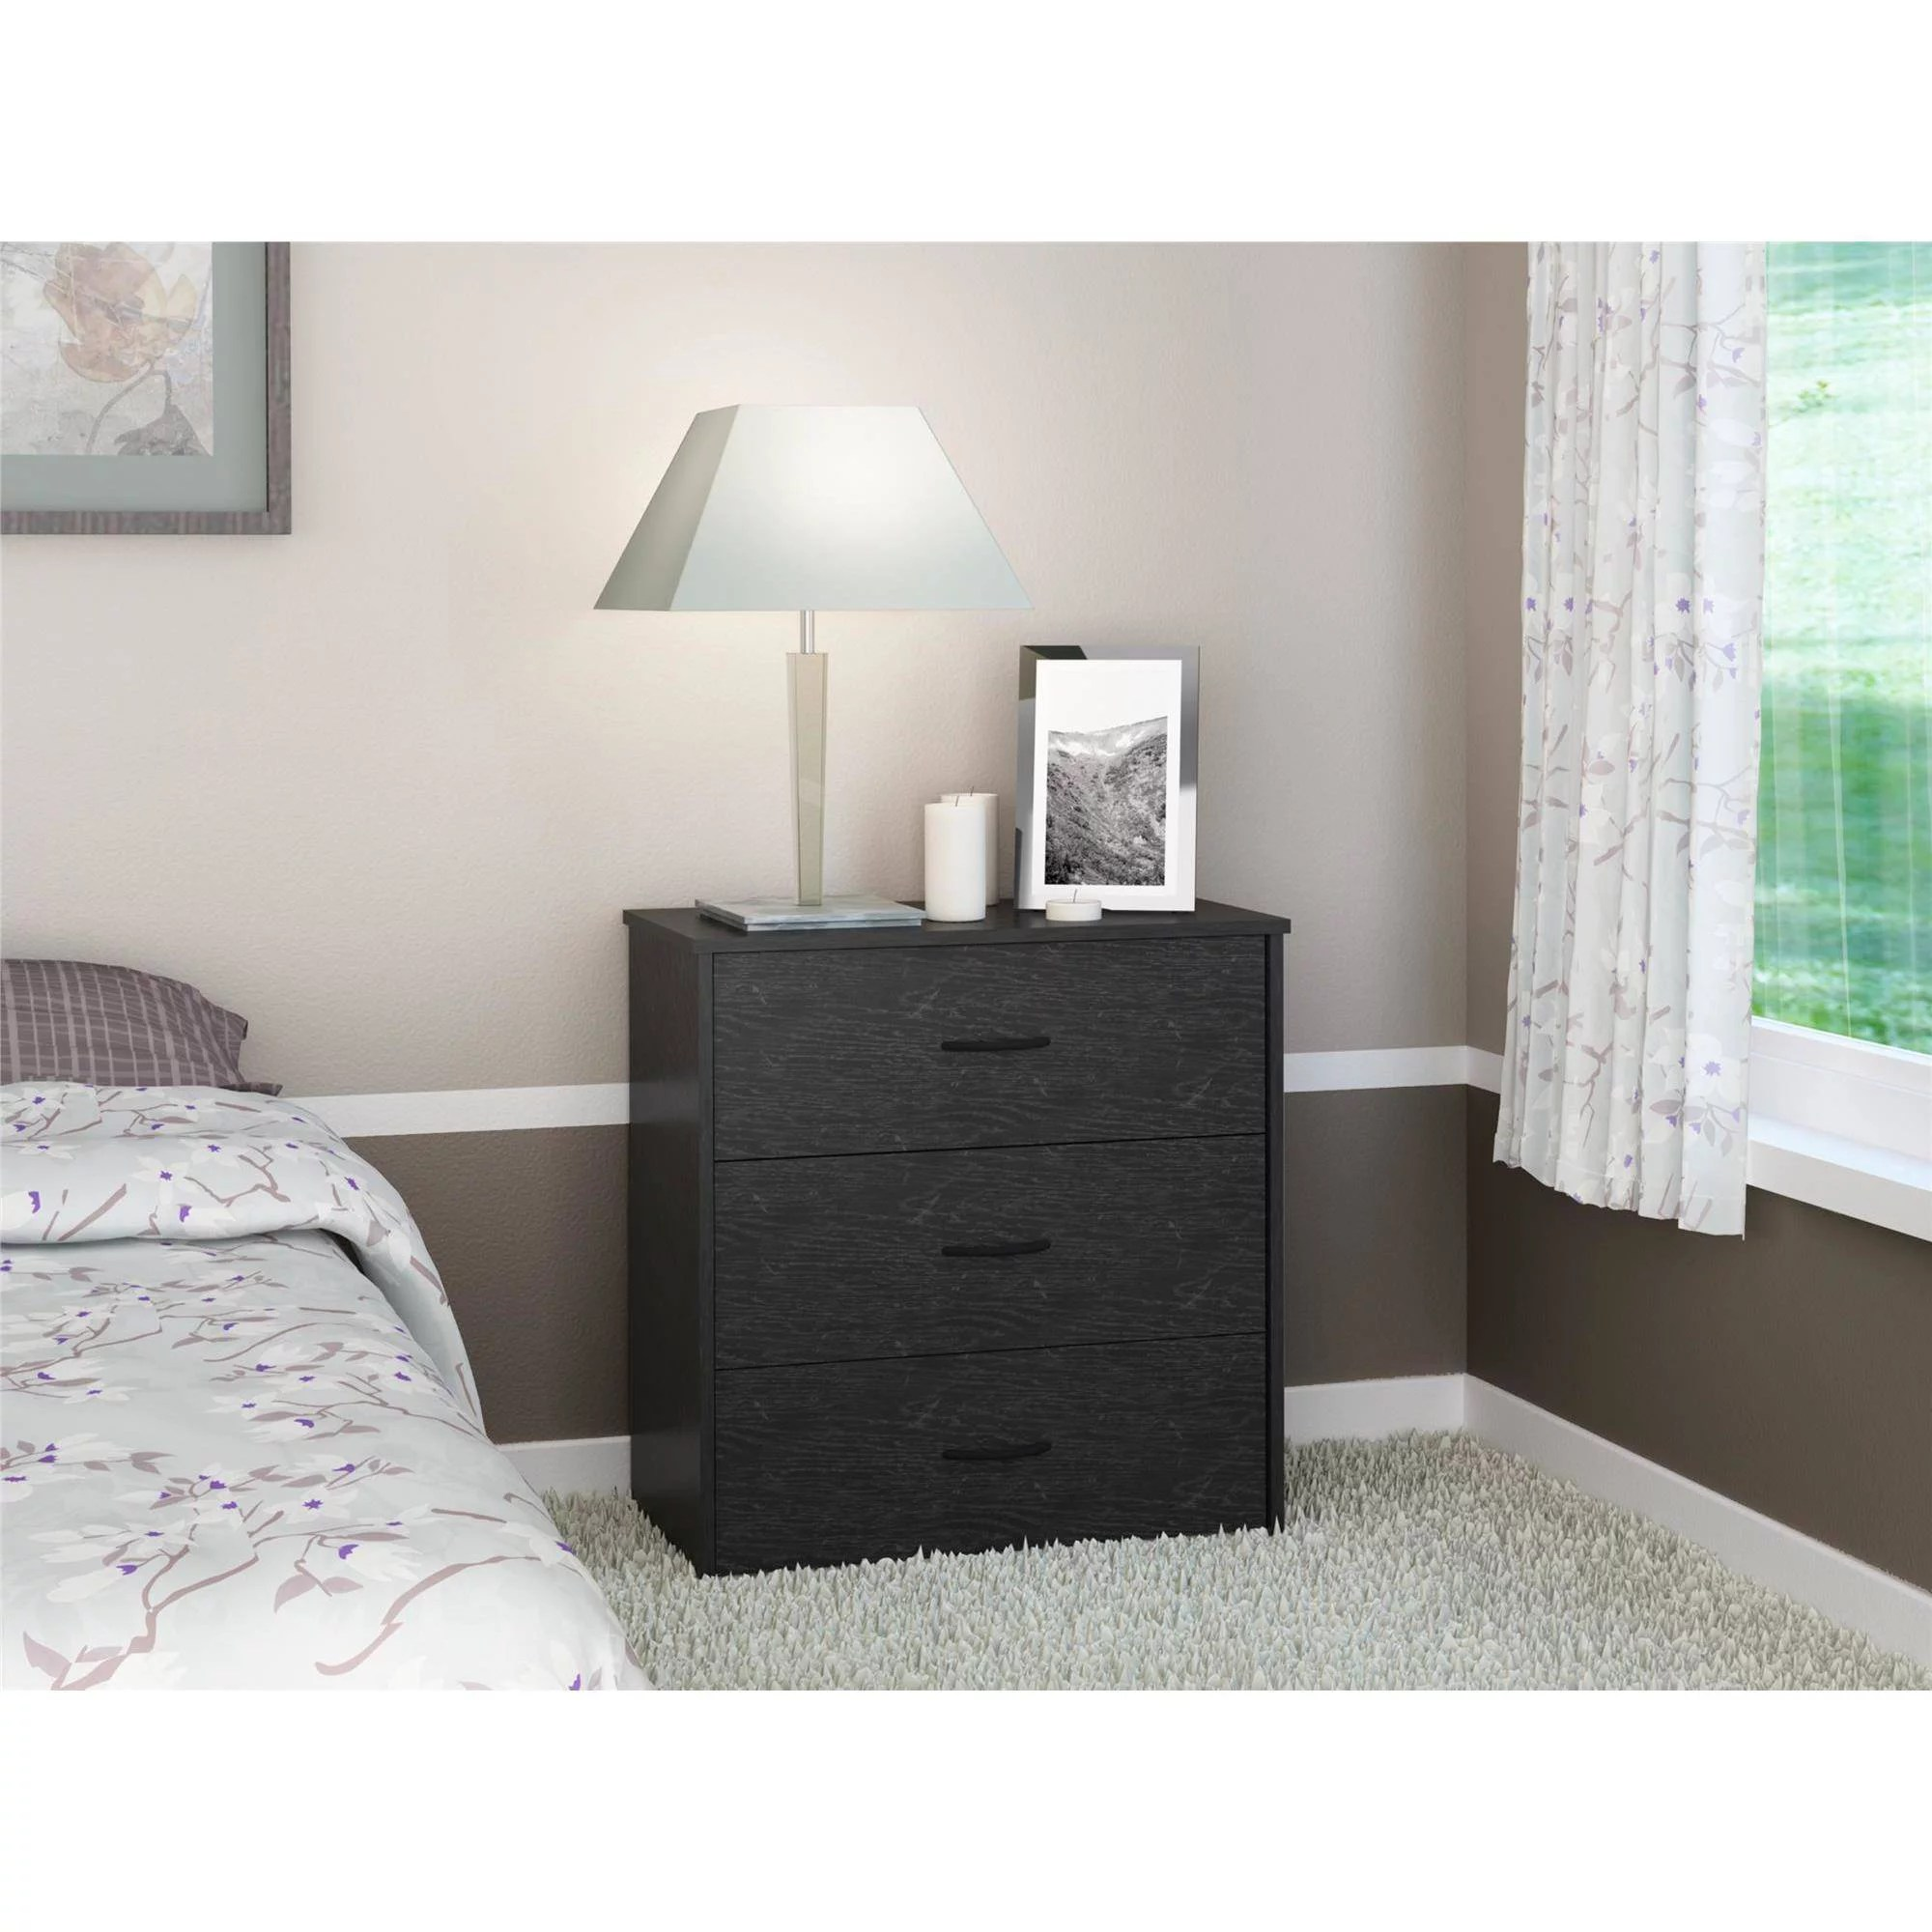 Tamburg Chest Of Drawers Ashley Furniture Home